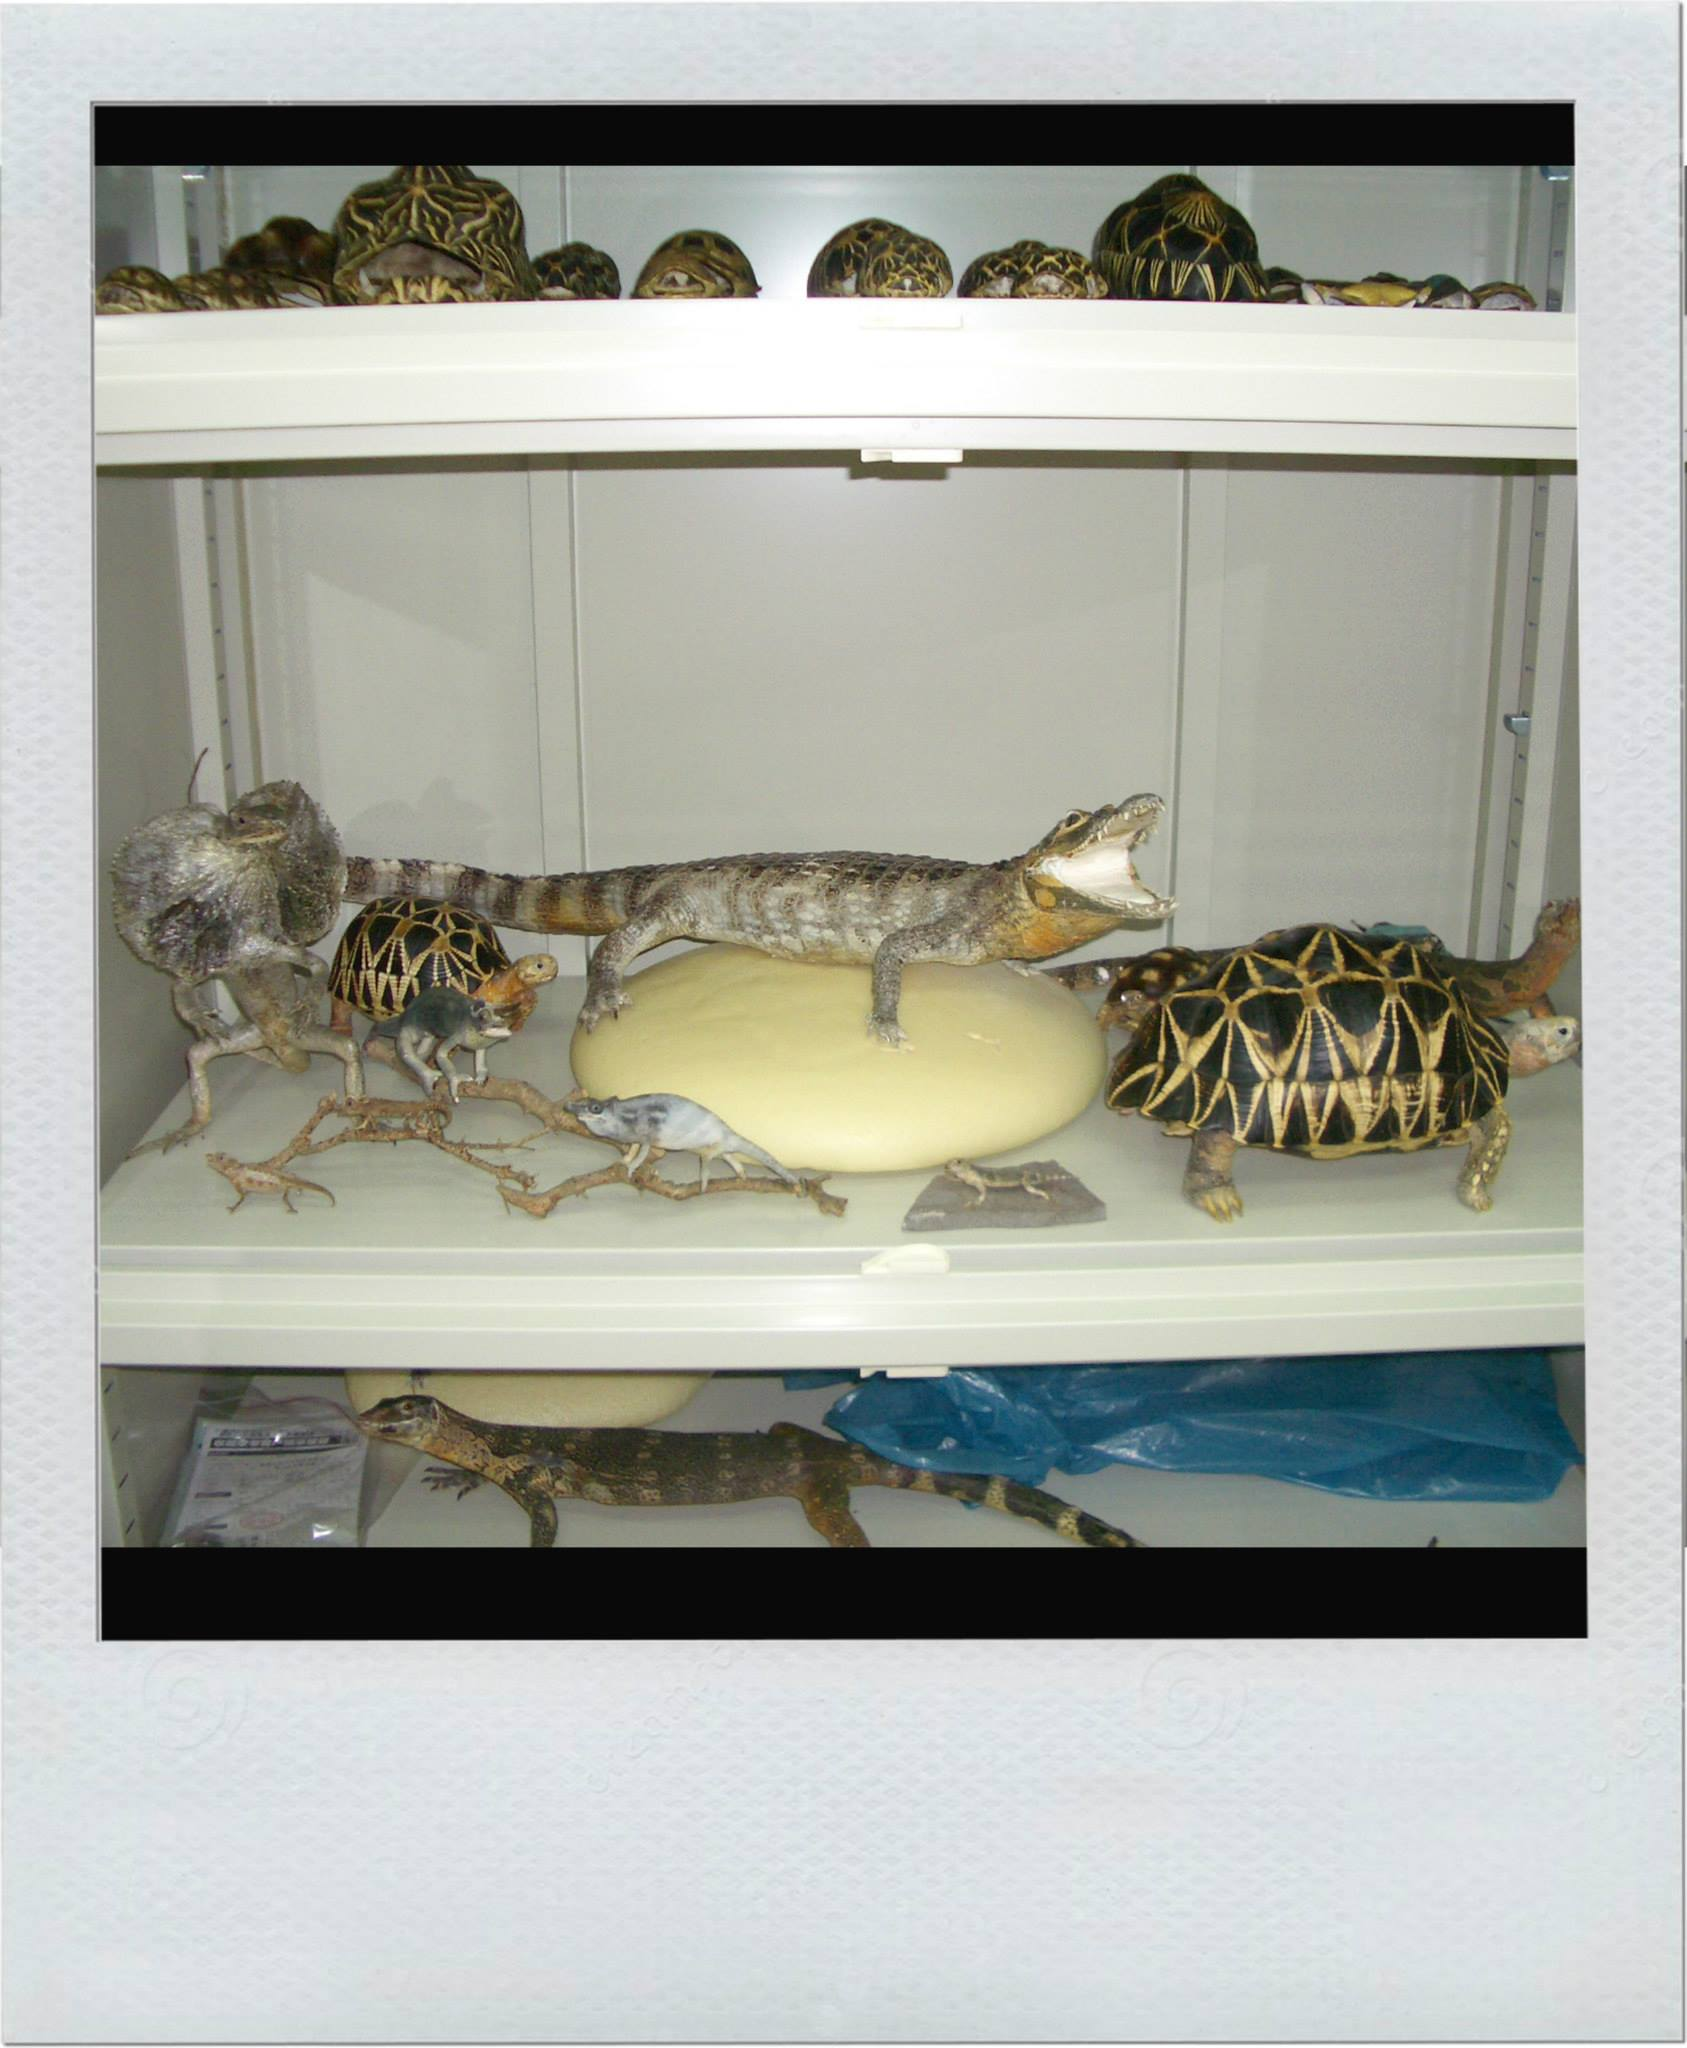 Various Reptile specimen stored in Eureka Dry Tech BE-2001W Entomlogy Dry Cabinet